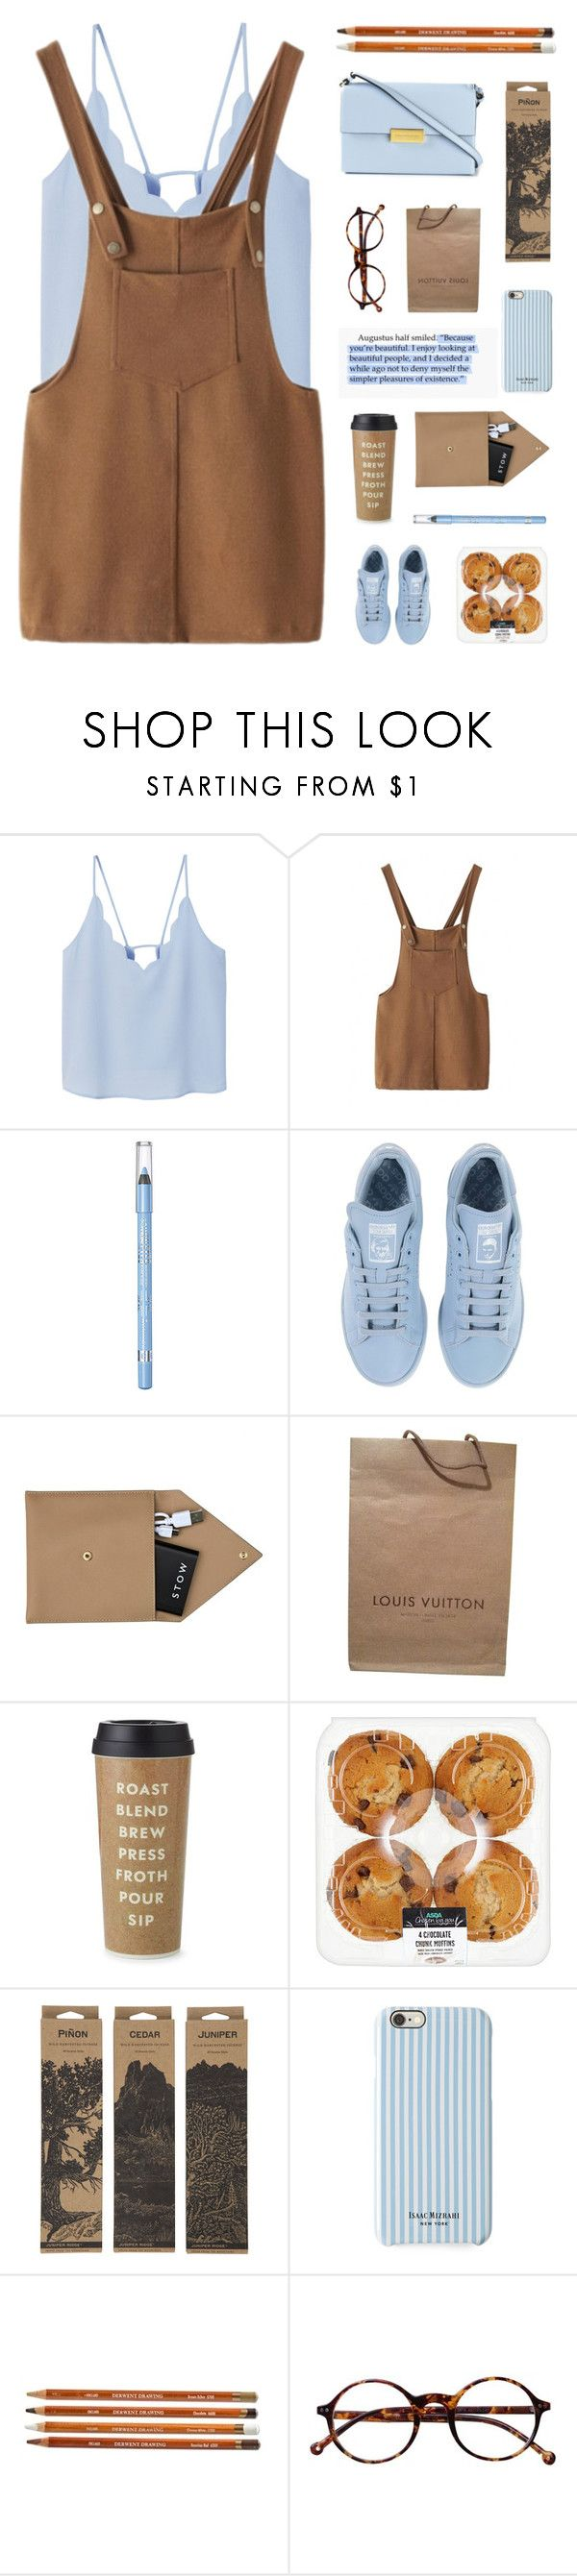 """#83"" by foalsy ❤ liked on Polyvore featuring MANGO, Rimmel, adidas, STOW, Louis Vuitton, Kate Spade, Jayson Home, Isaac Mizrahi, Retrò and STELLA McCARTNEY"